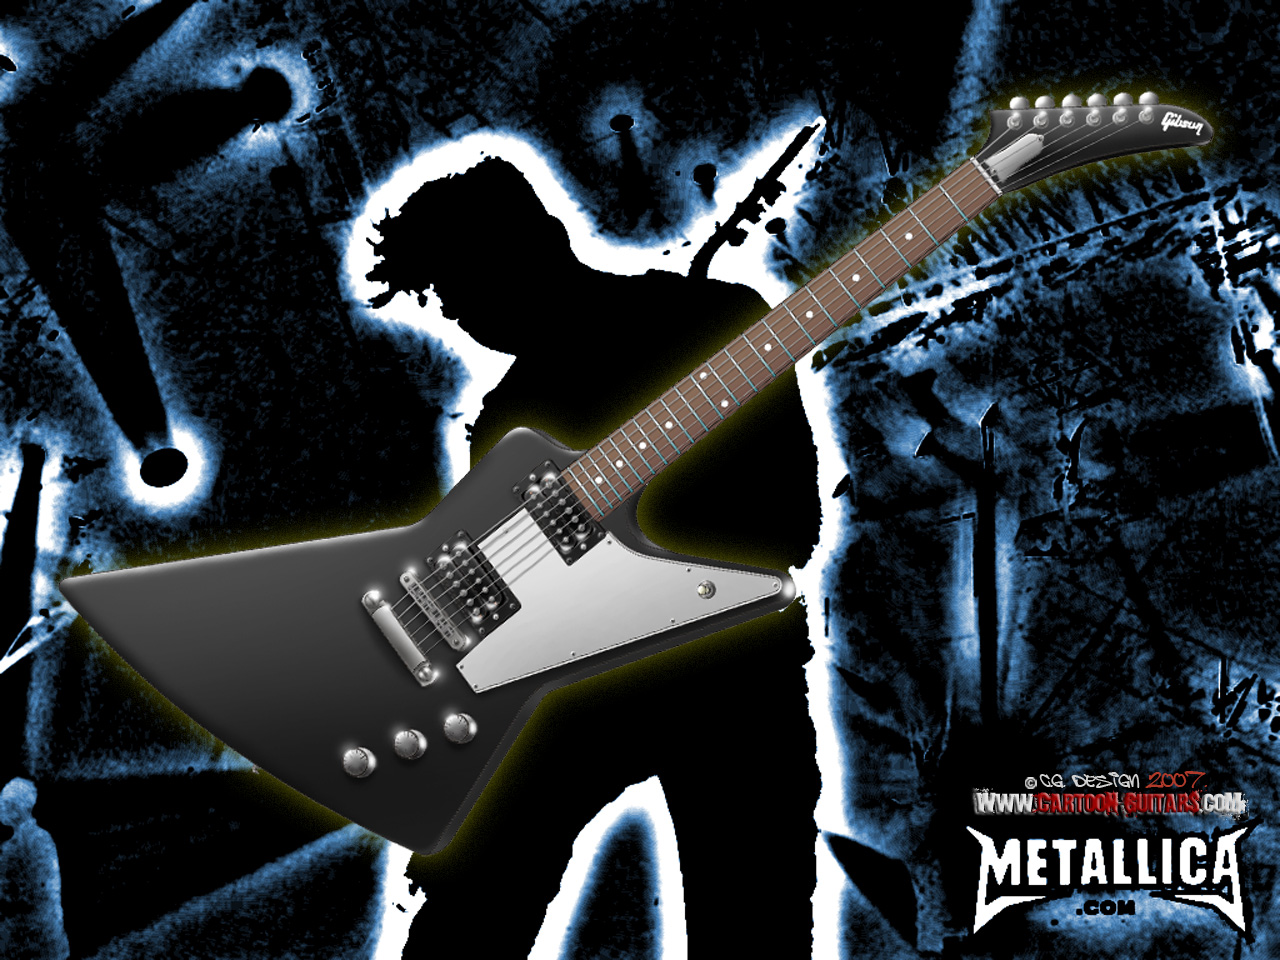 Random Wallpapers. metallica_tribute_wallpaper_20090315_1256748877.jpg